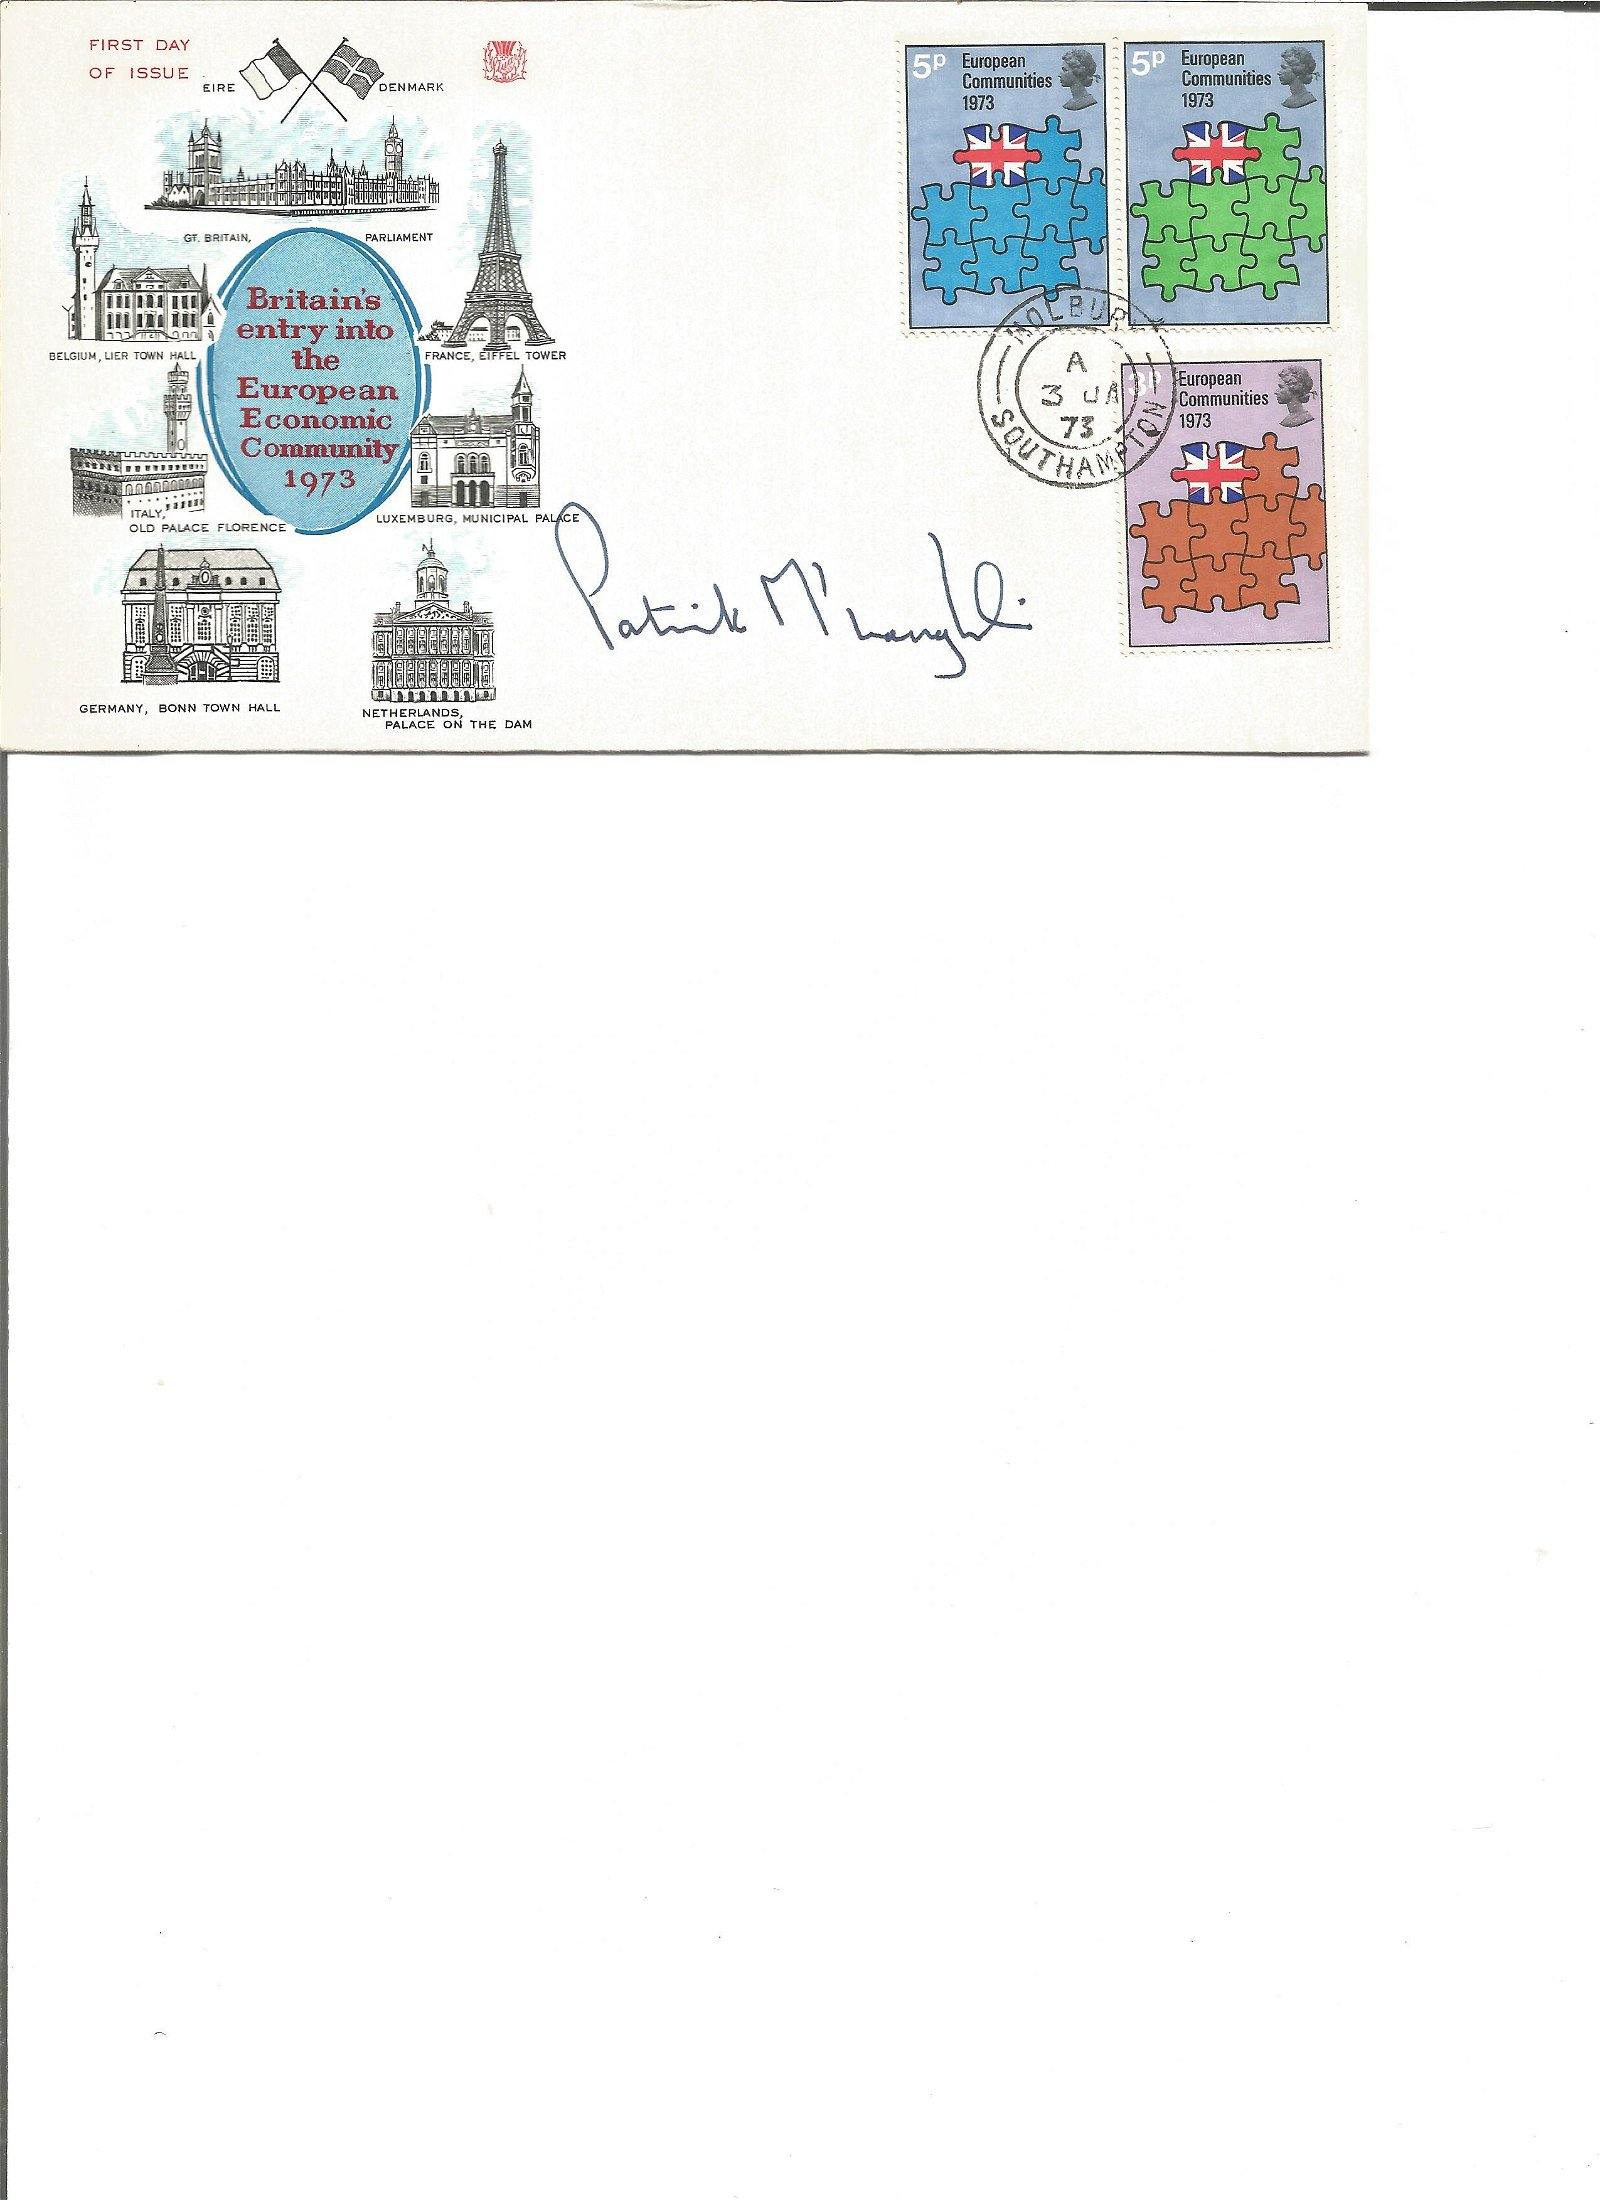 Patrick Mcloughlin signed cover. Good Condition. All